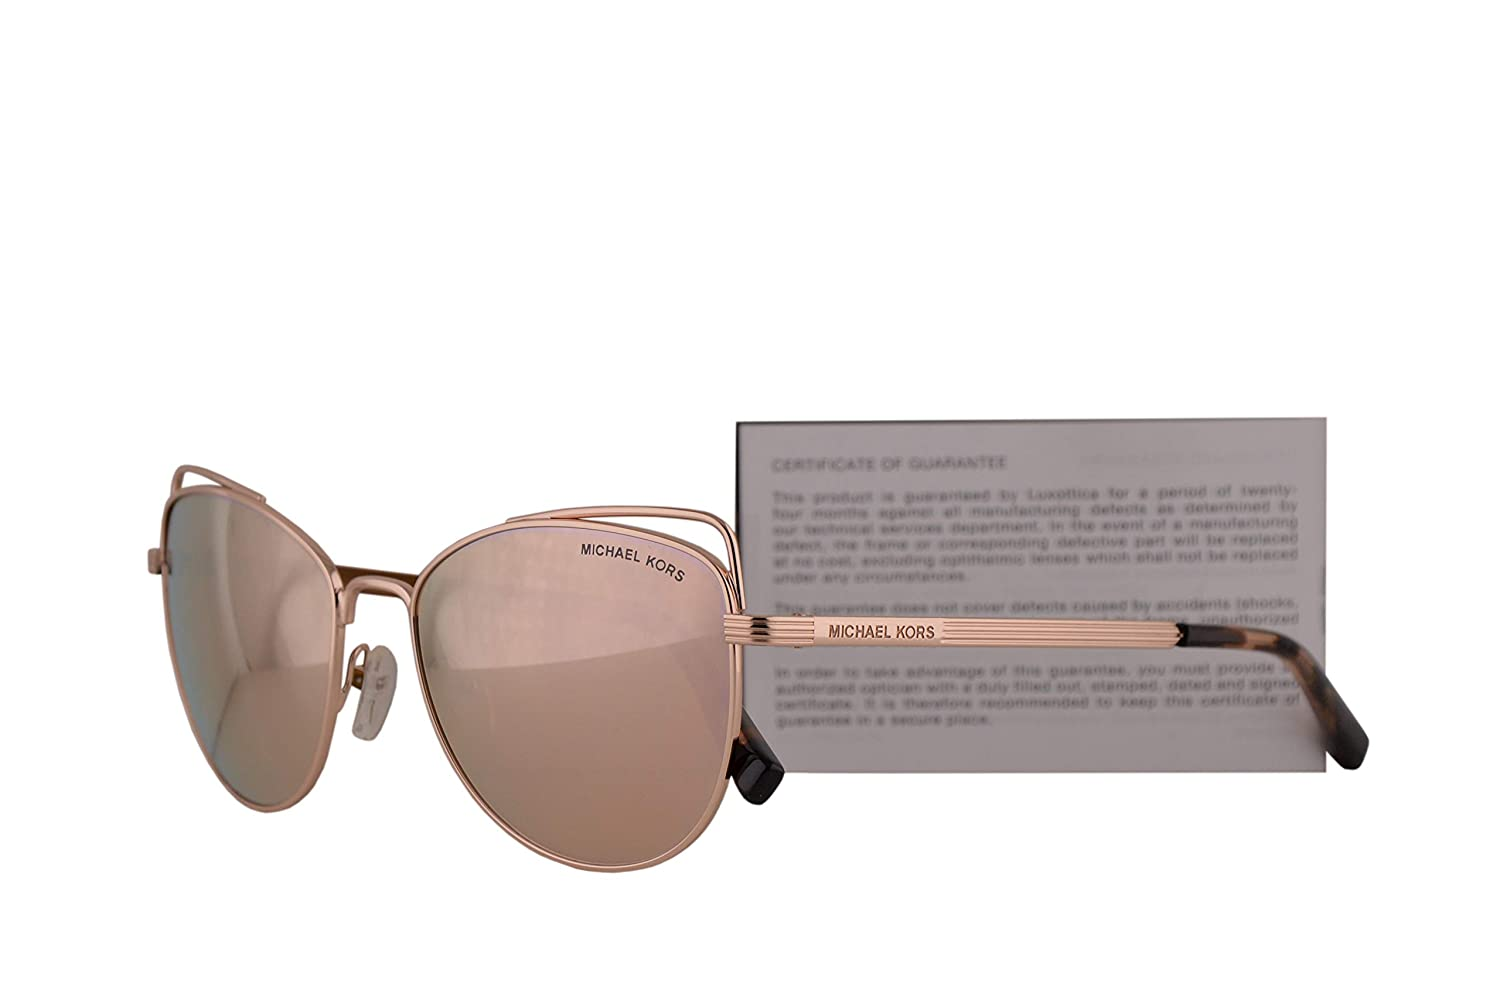 6417c04be943 Michael Kors MK1035 St. Lucia Sunglasses Rose Gold w/Liquid Rose Gold  Mirror Lens 55mm 11085A MK 1035: Amazon.co.uk: Clothing